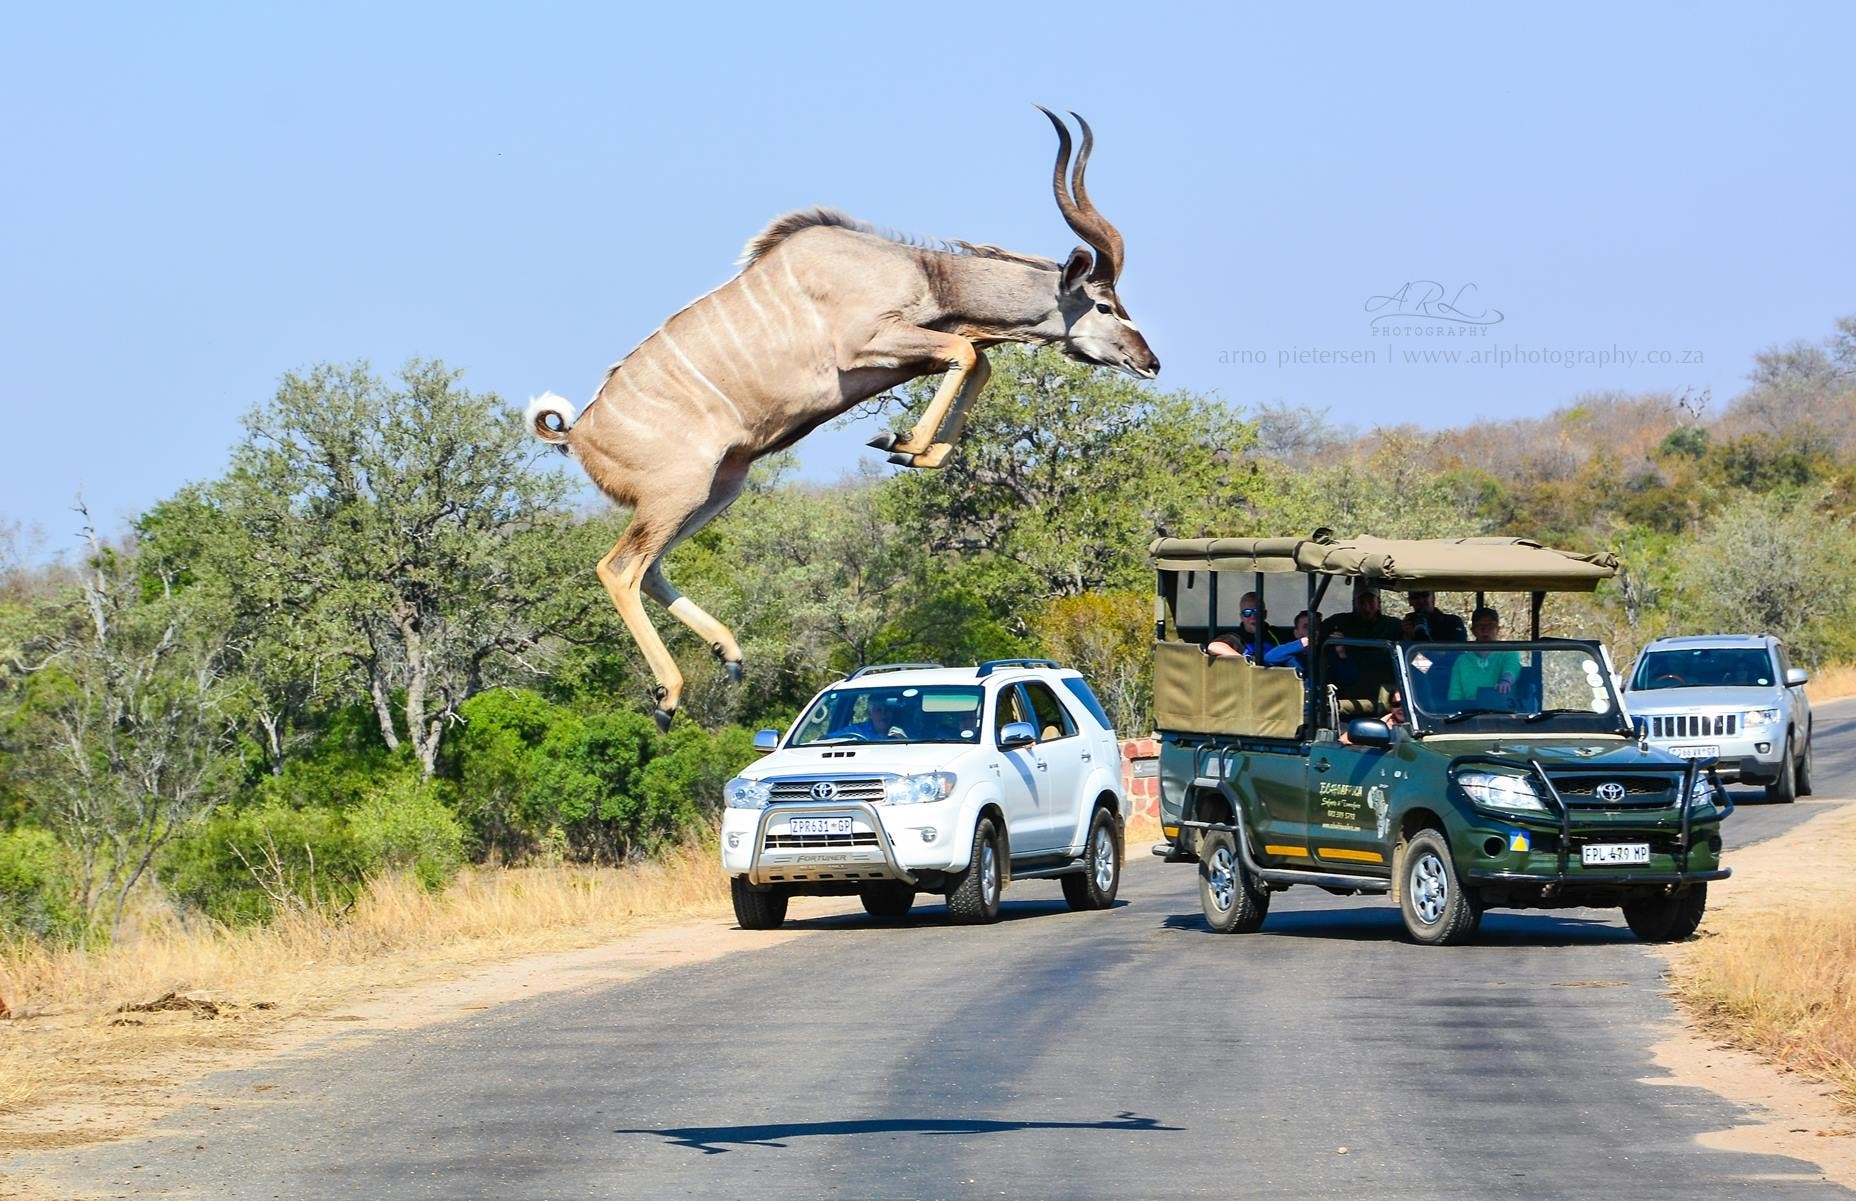 Incredible Photos Of Kudu Jumping In South Africa